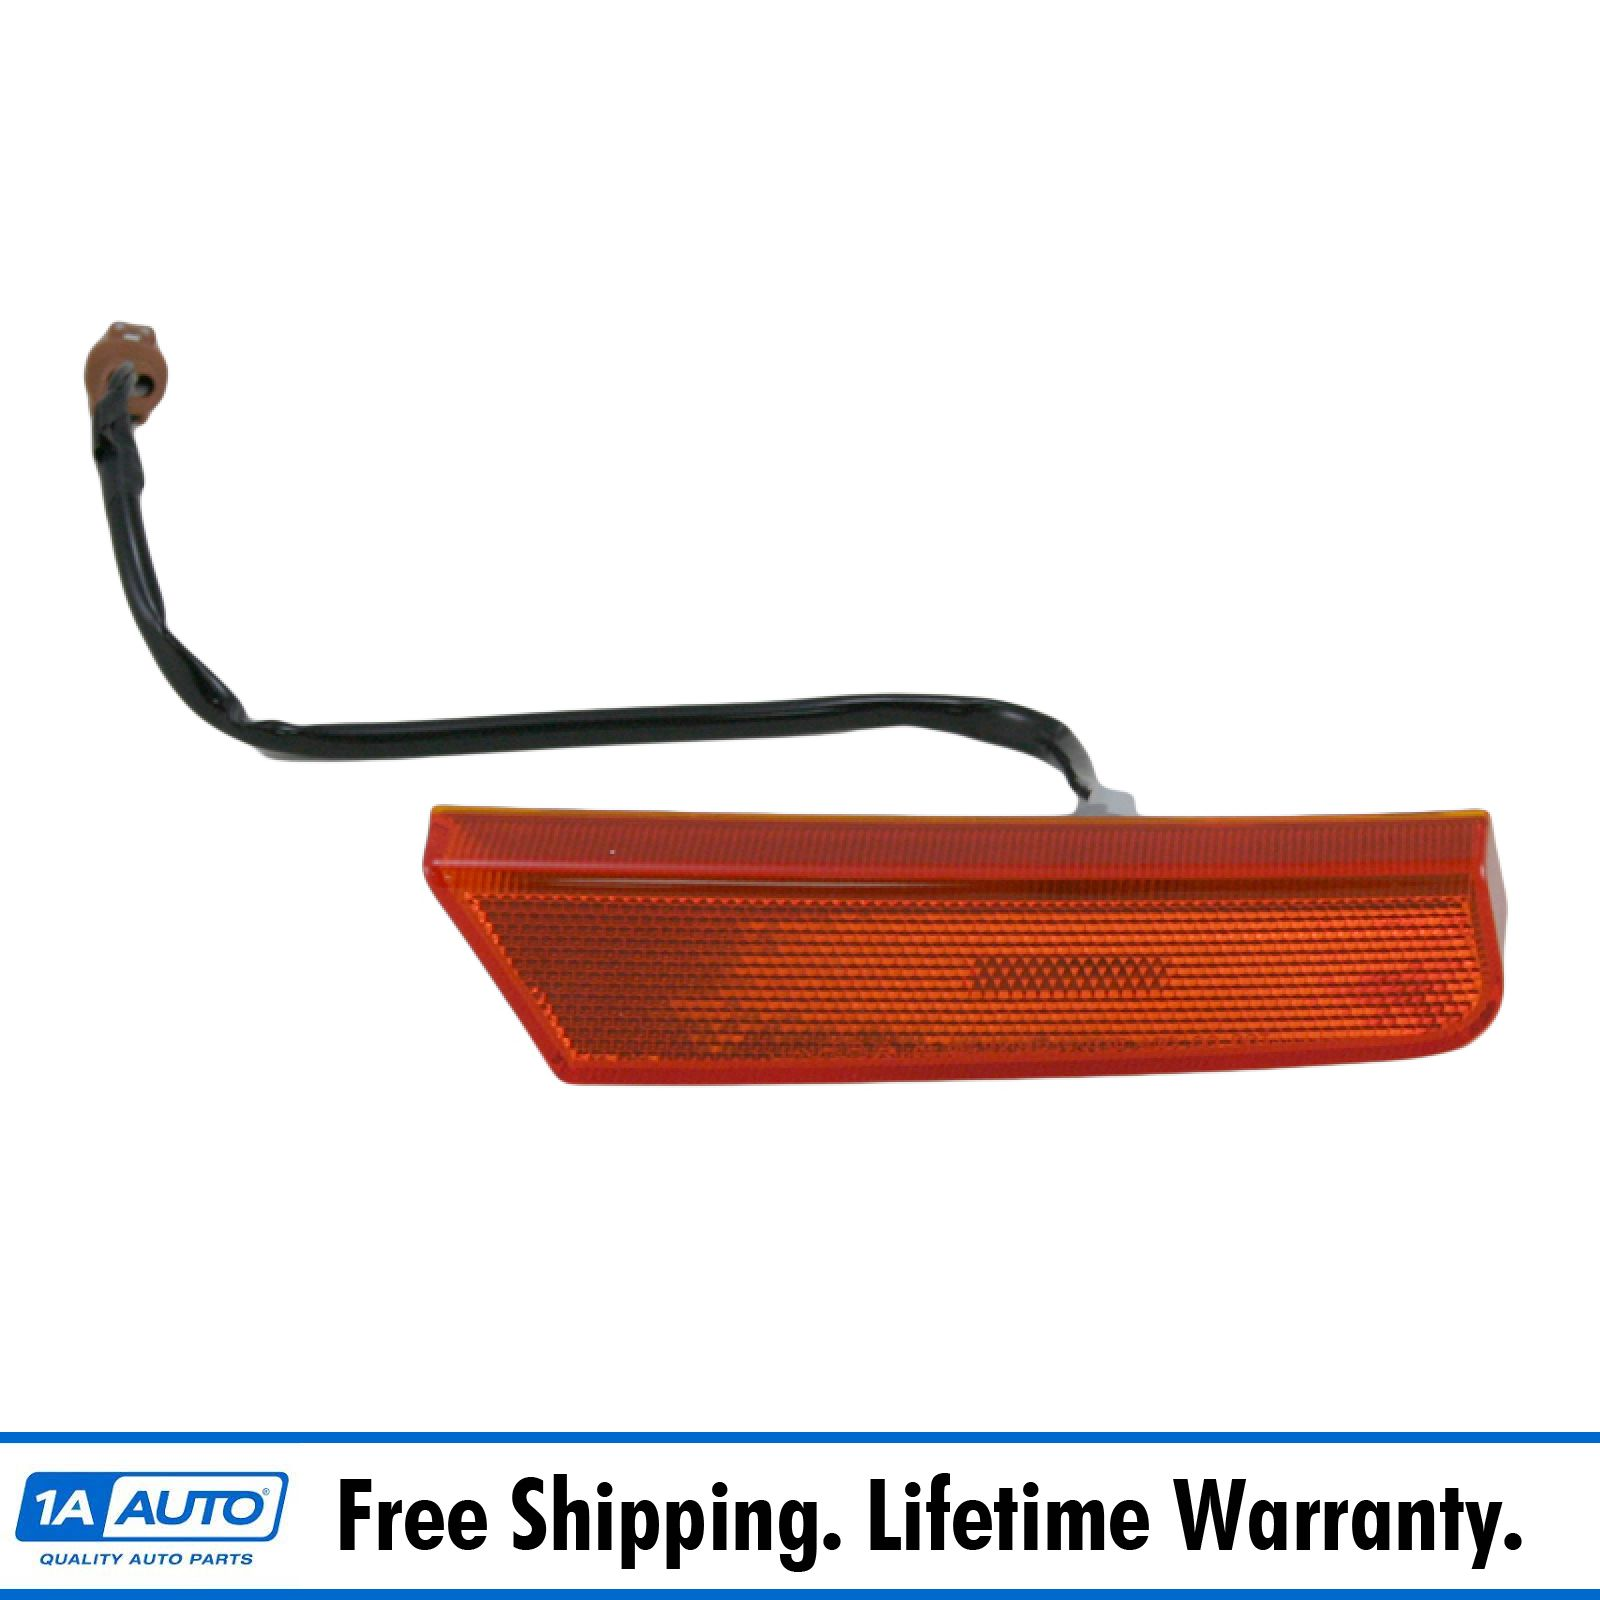 Side Marker compatible with Nissan Nissan Xterra 02-04 Set of 2 Front Right and Left Assembly